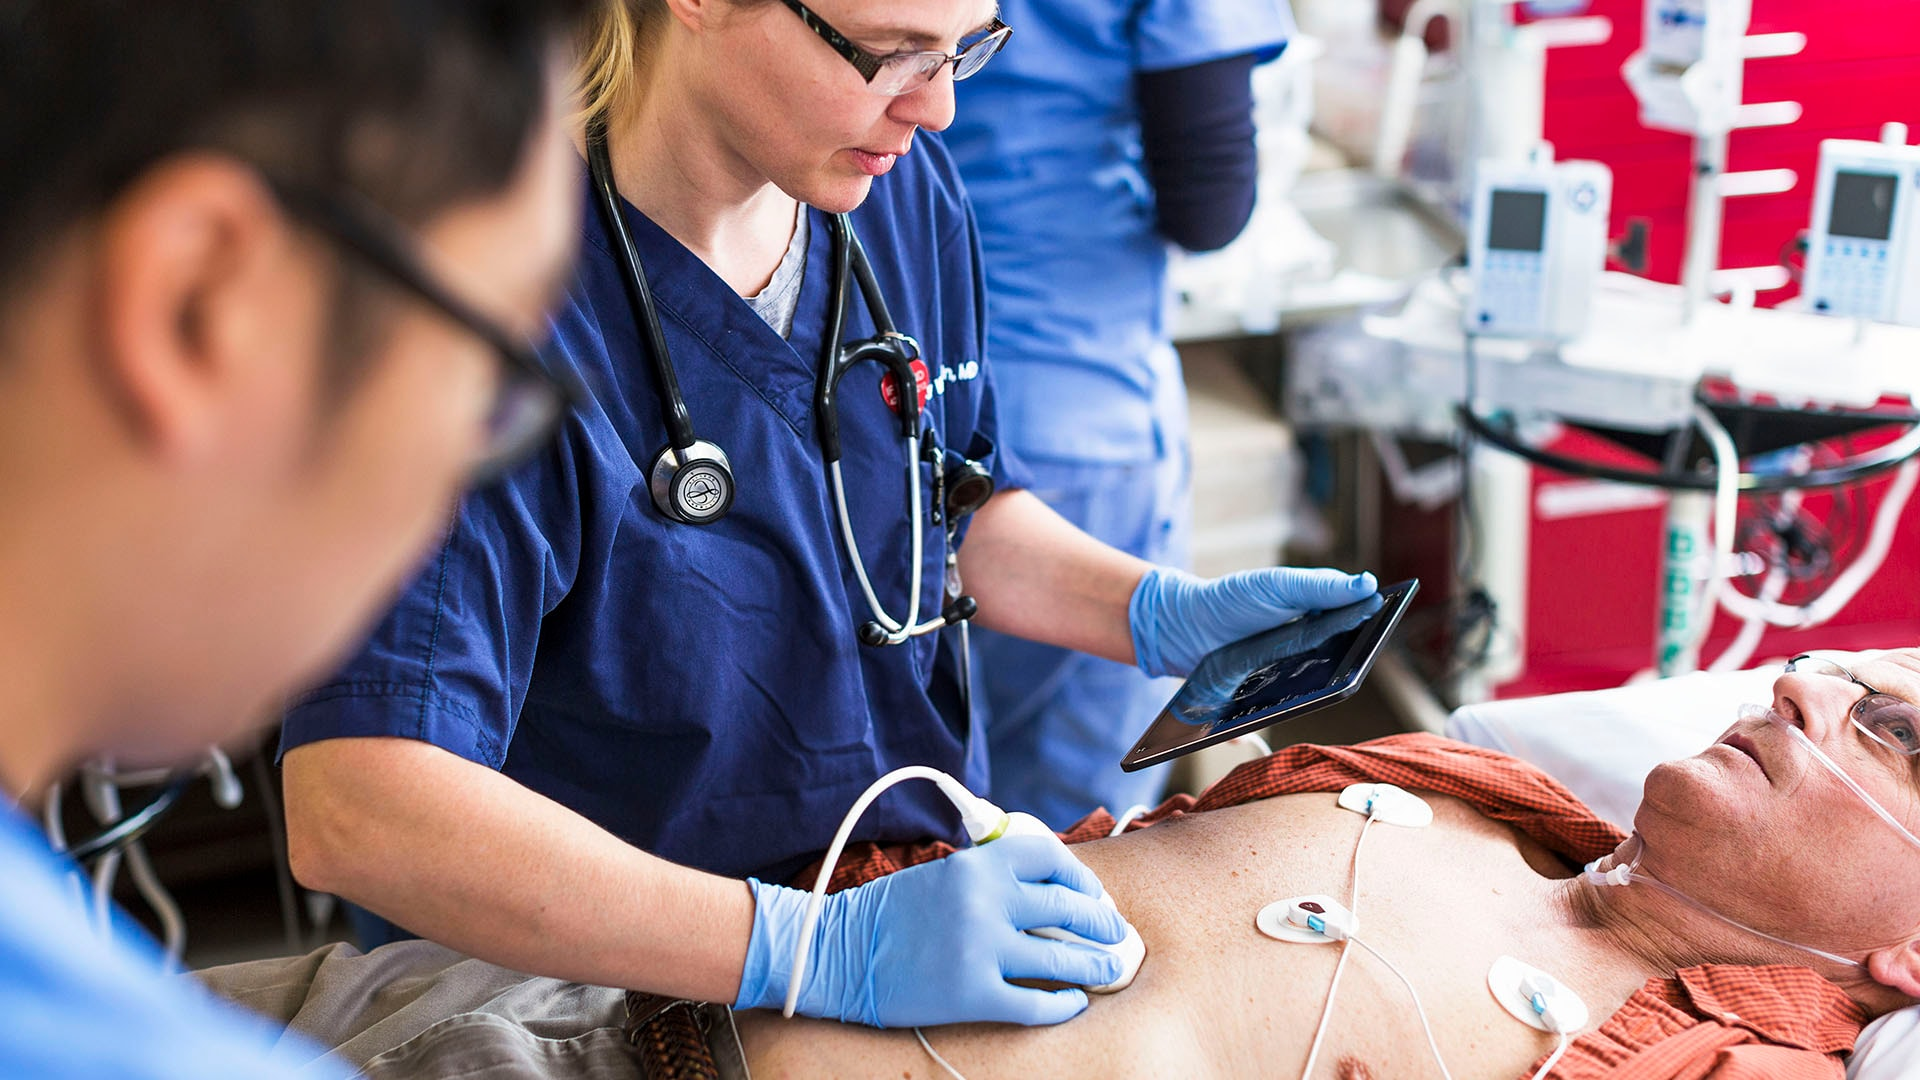 Philips Lumify handheld ultrasound supports life-saving technology in pre-hospital setting